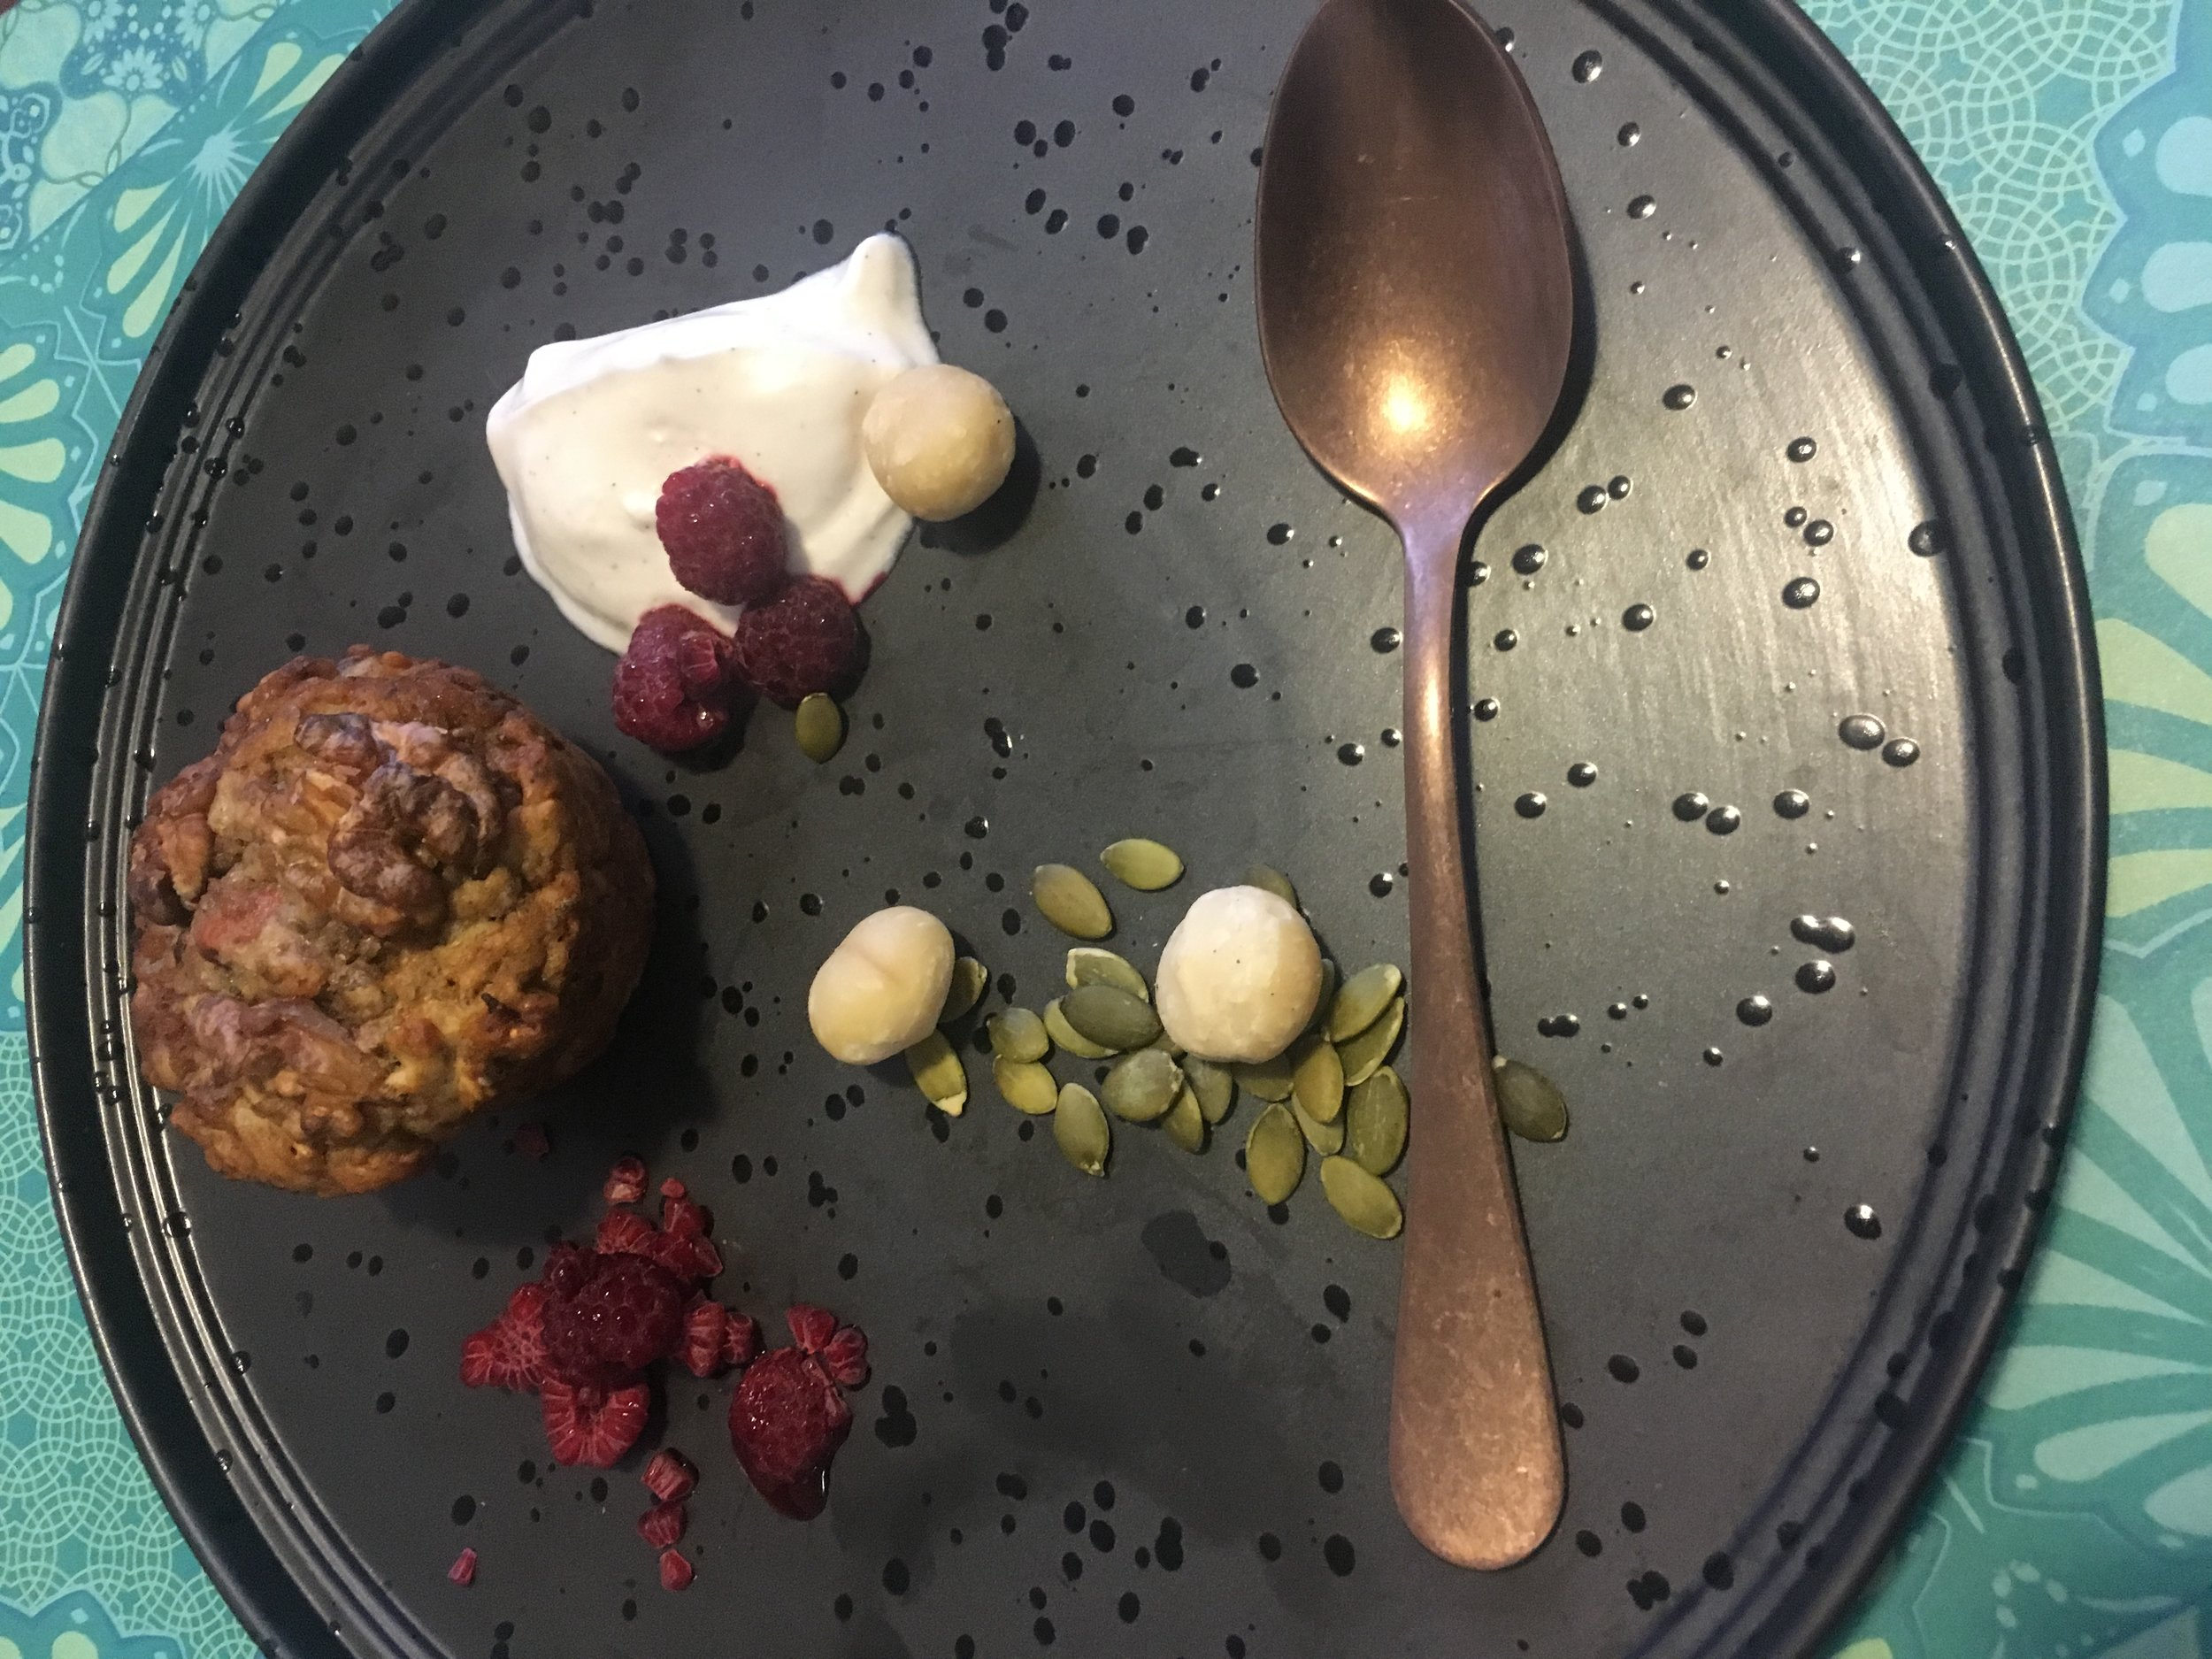 """I gave a muffin to our """"foodie"""" Suzanne, who styled it with yogurt, raspberries, macadamia nuts, and pumpkin seeds for her lunch."""